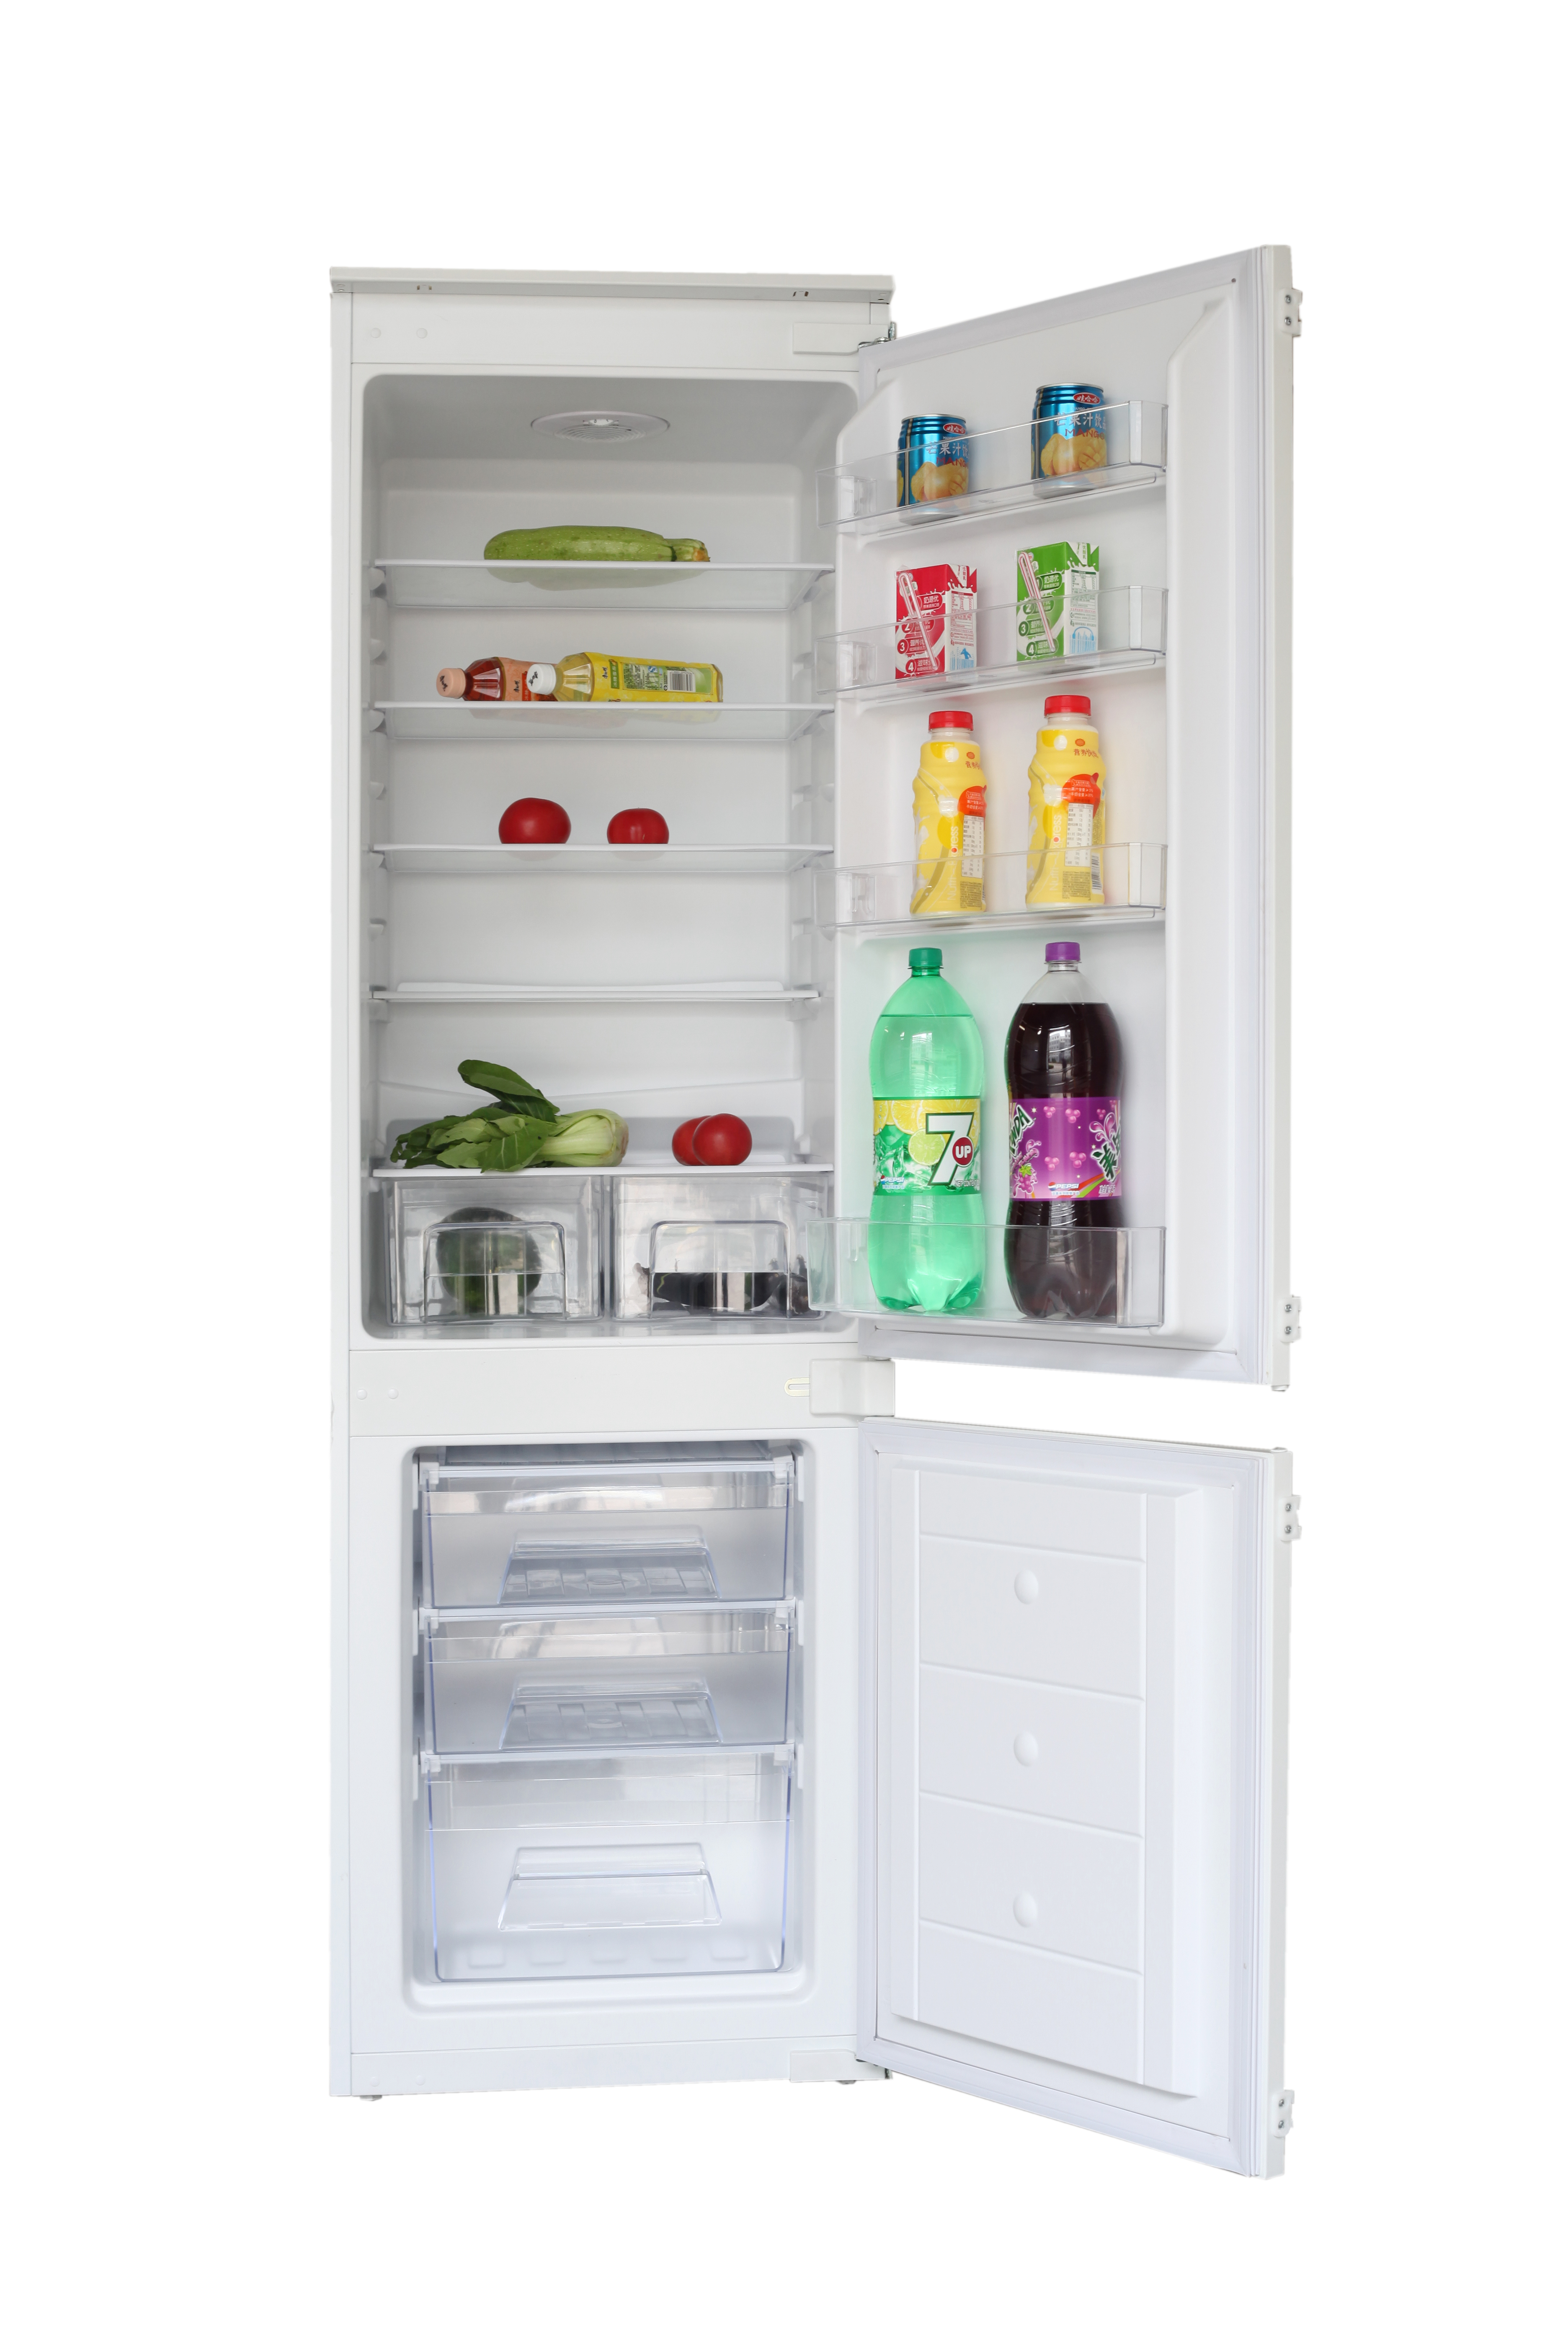 Is it worth investing in freezer cabinets, or is it better to limit to refrigerated cabinets 63